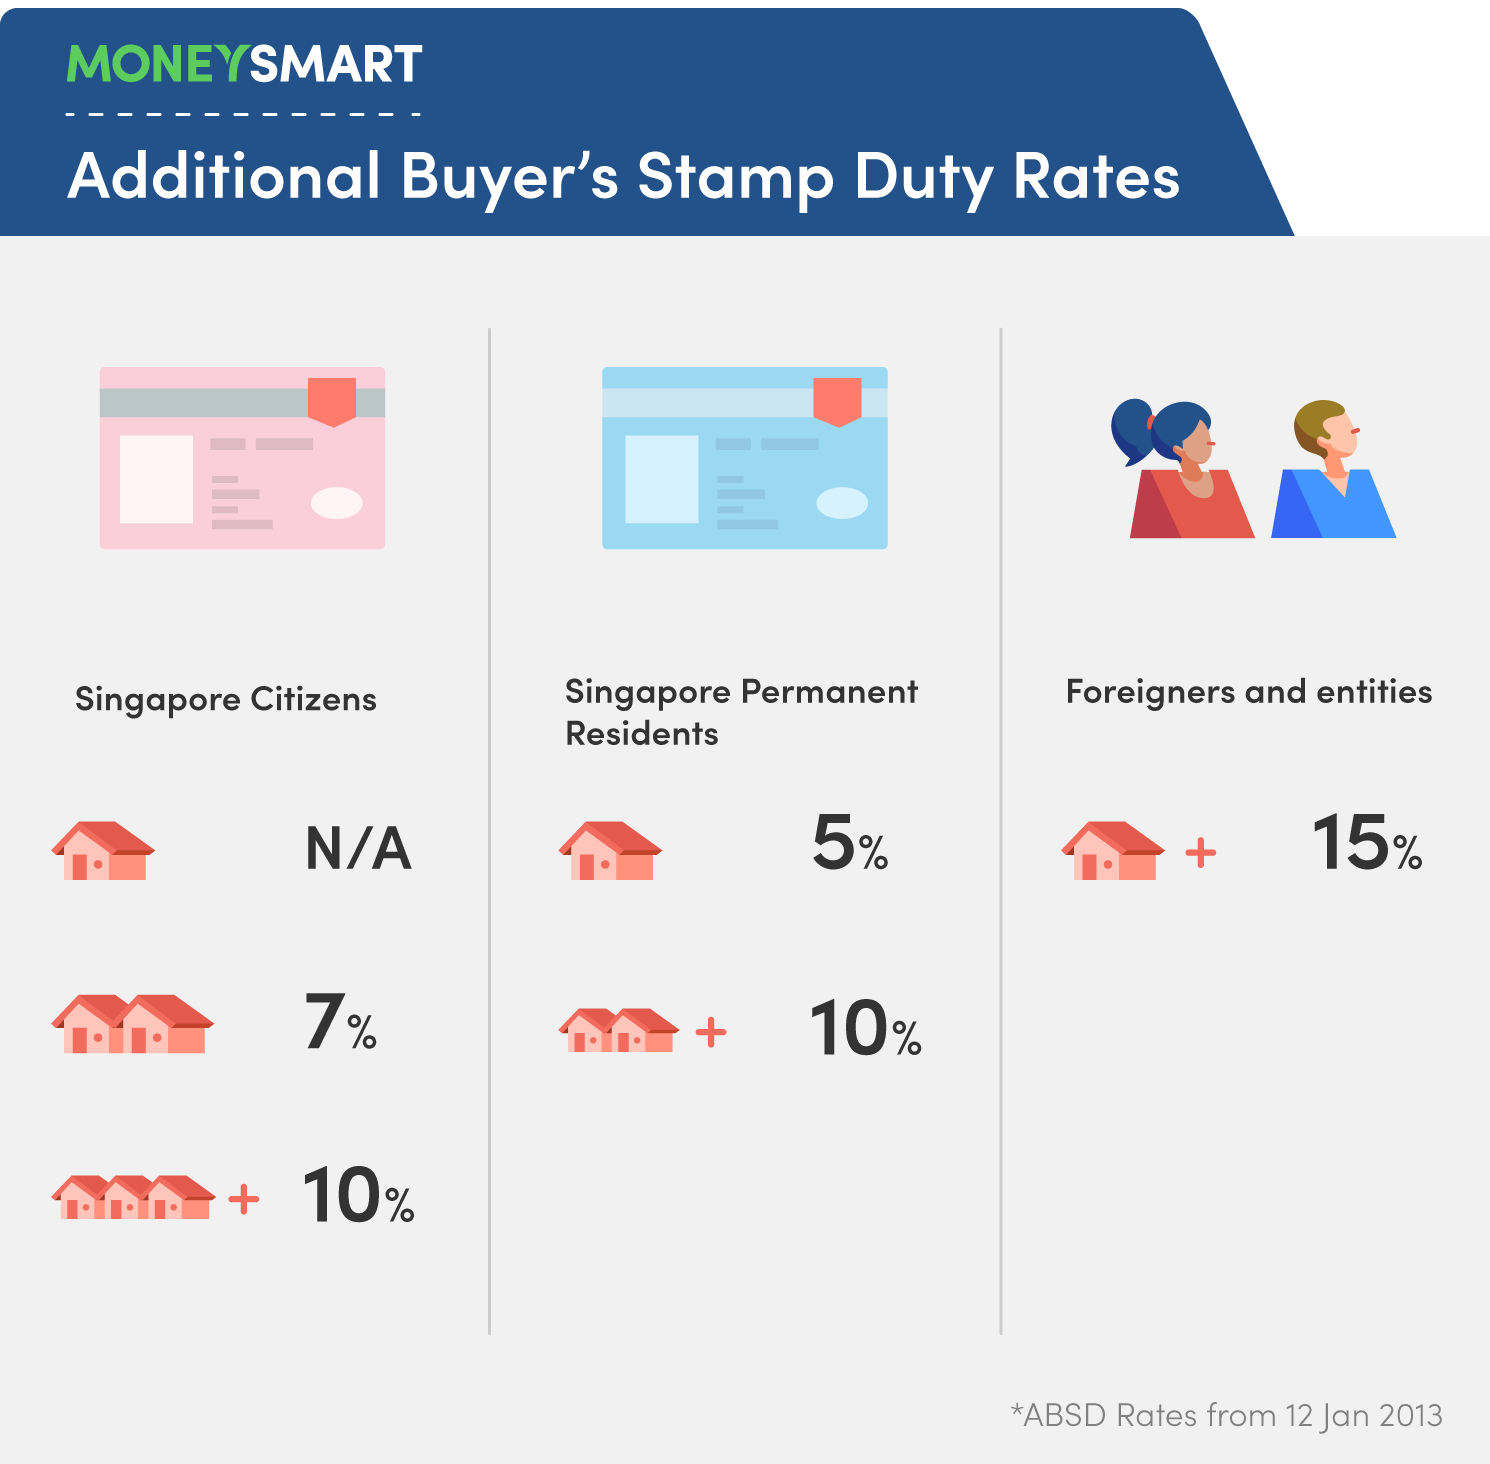 home loans in Singapore additional buyers stamp duty ABSD